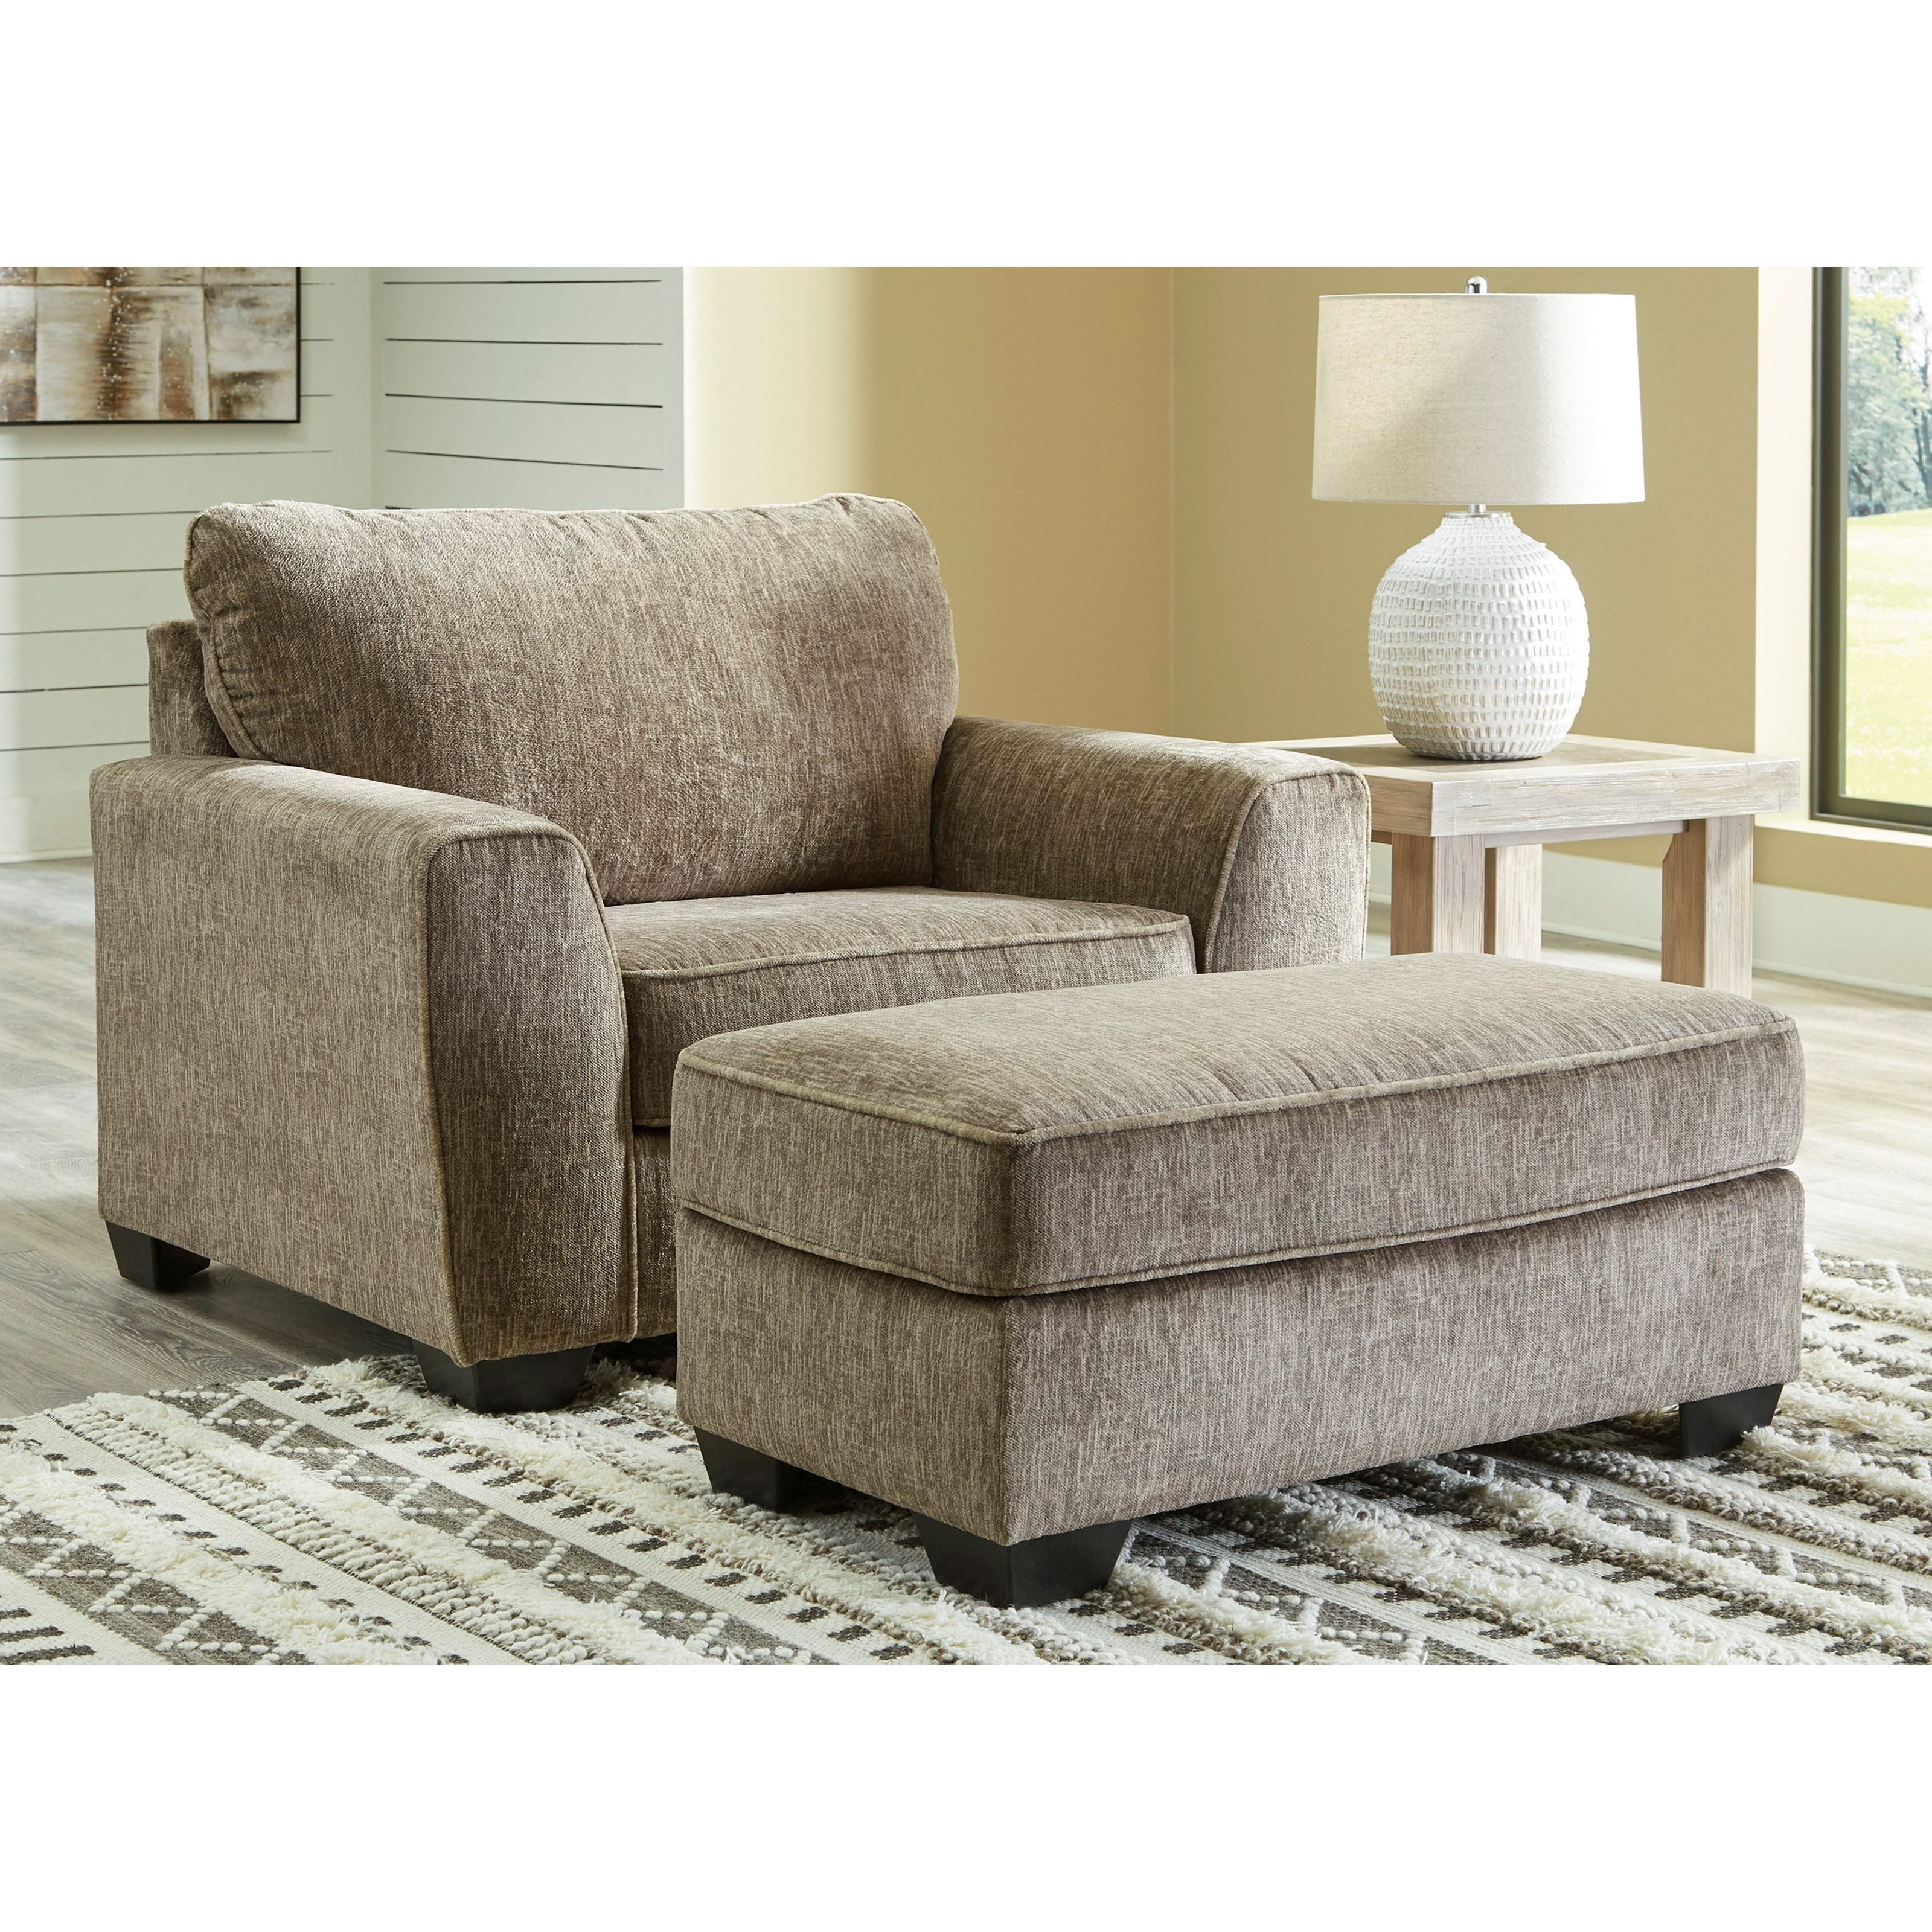 Olin Chair and Ottoman Set by Benchcraft at Value City Furniture